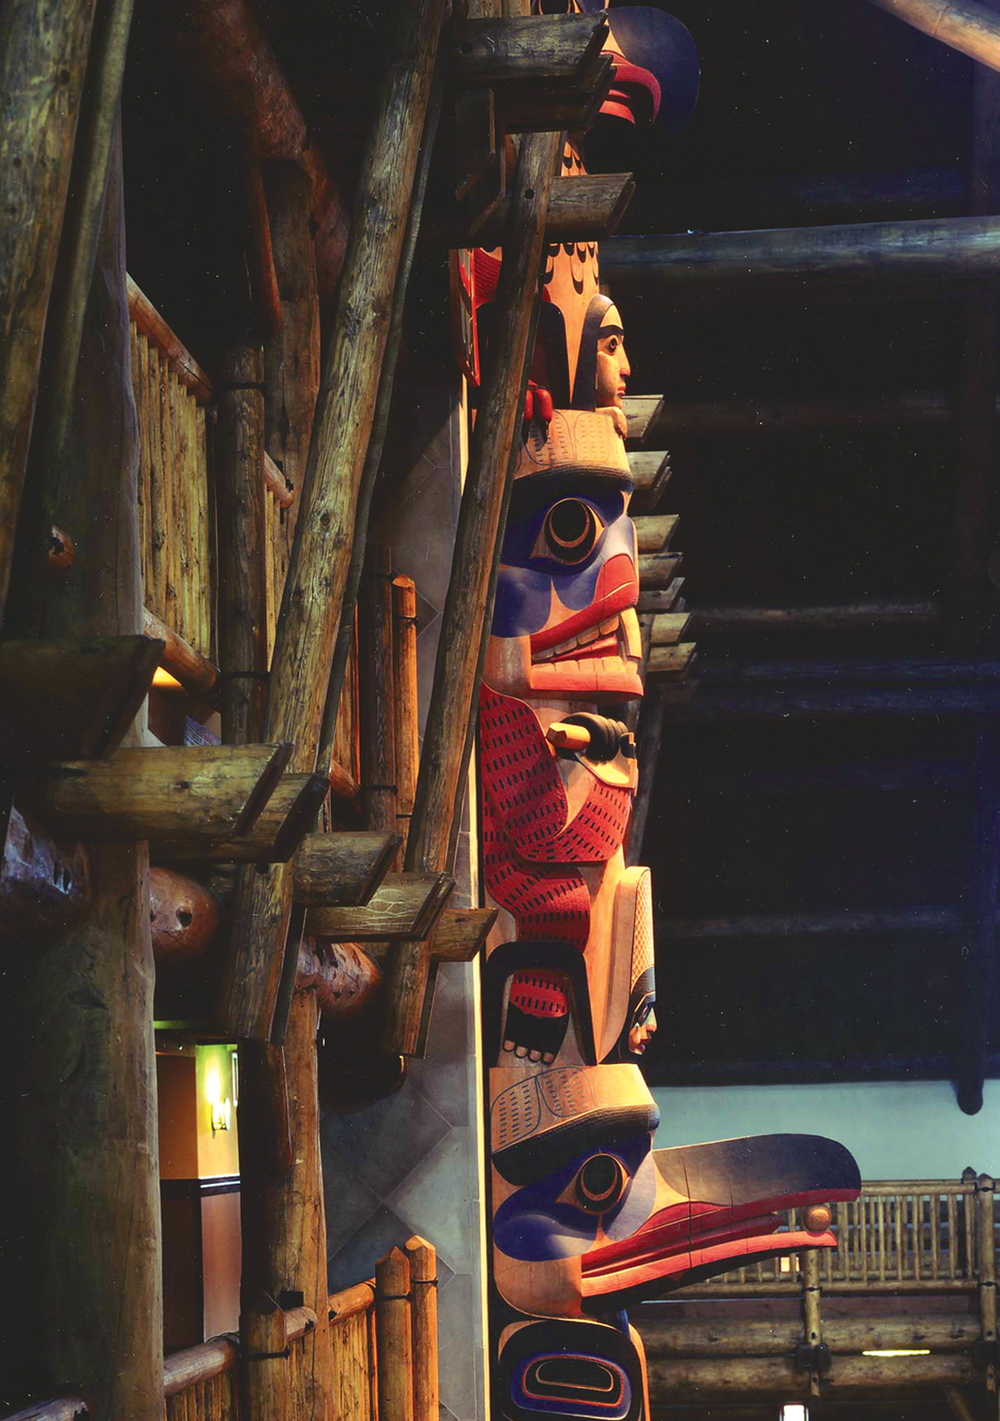 disney_wilderness_lodge_anaheim_florida_totem_pole.jpg